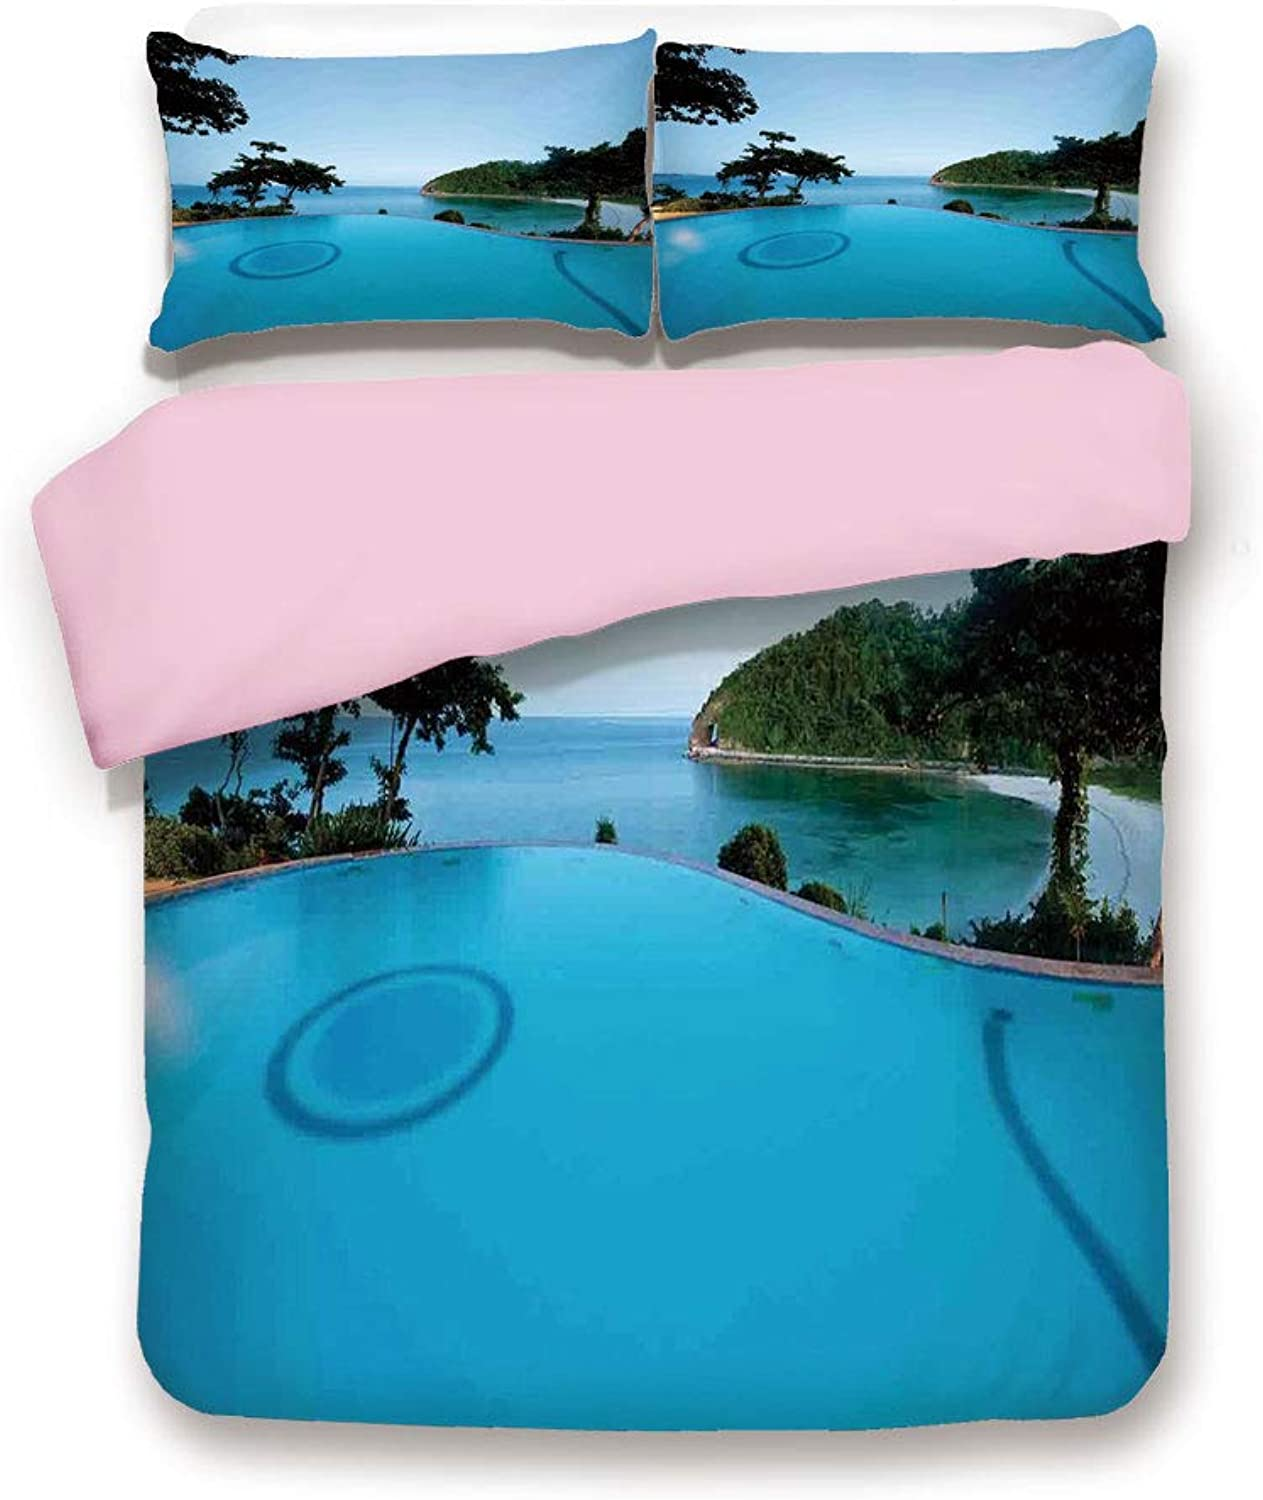 Pink Duvet Cover Set,Twin Size,Pool View at Sunset Beach in Seacoast Ocean Heavenly Vibrant colors Adventure Photo,Decorative 3 Piece Bedding Set with 2 Pillow Sham,Best Gift For Girls Women,Turquoise